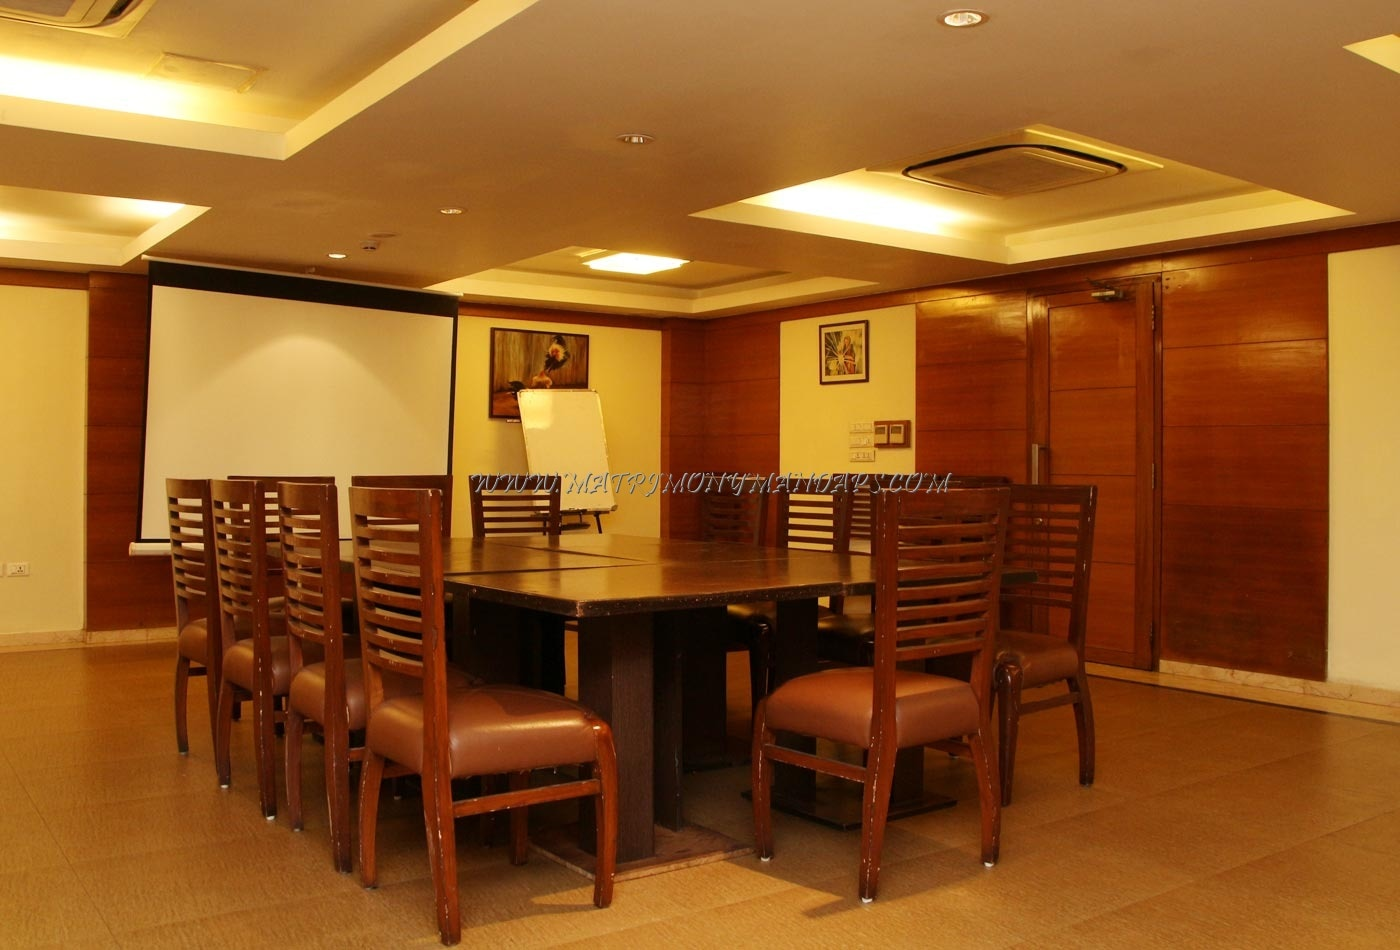 Find the availability of the Coraltree (A/C) in RT Nagar, Bangalore and avail special offers